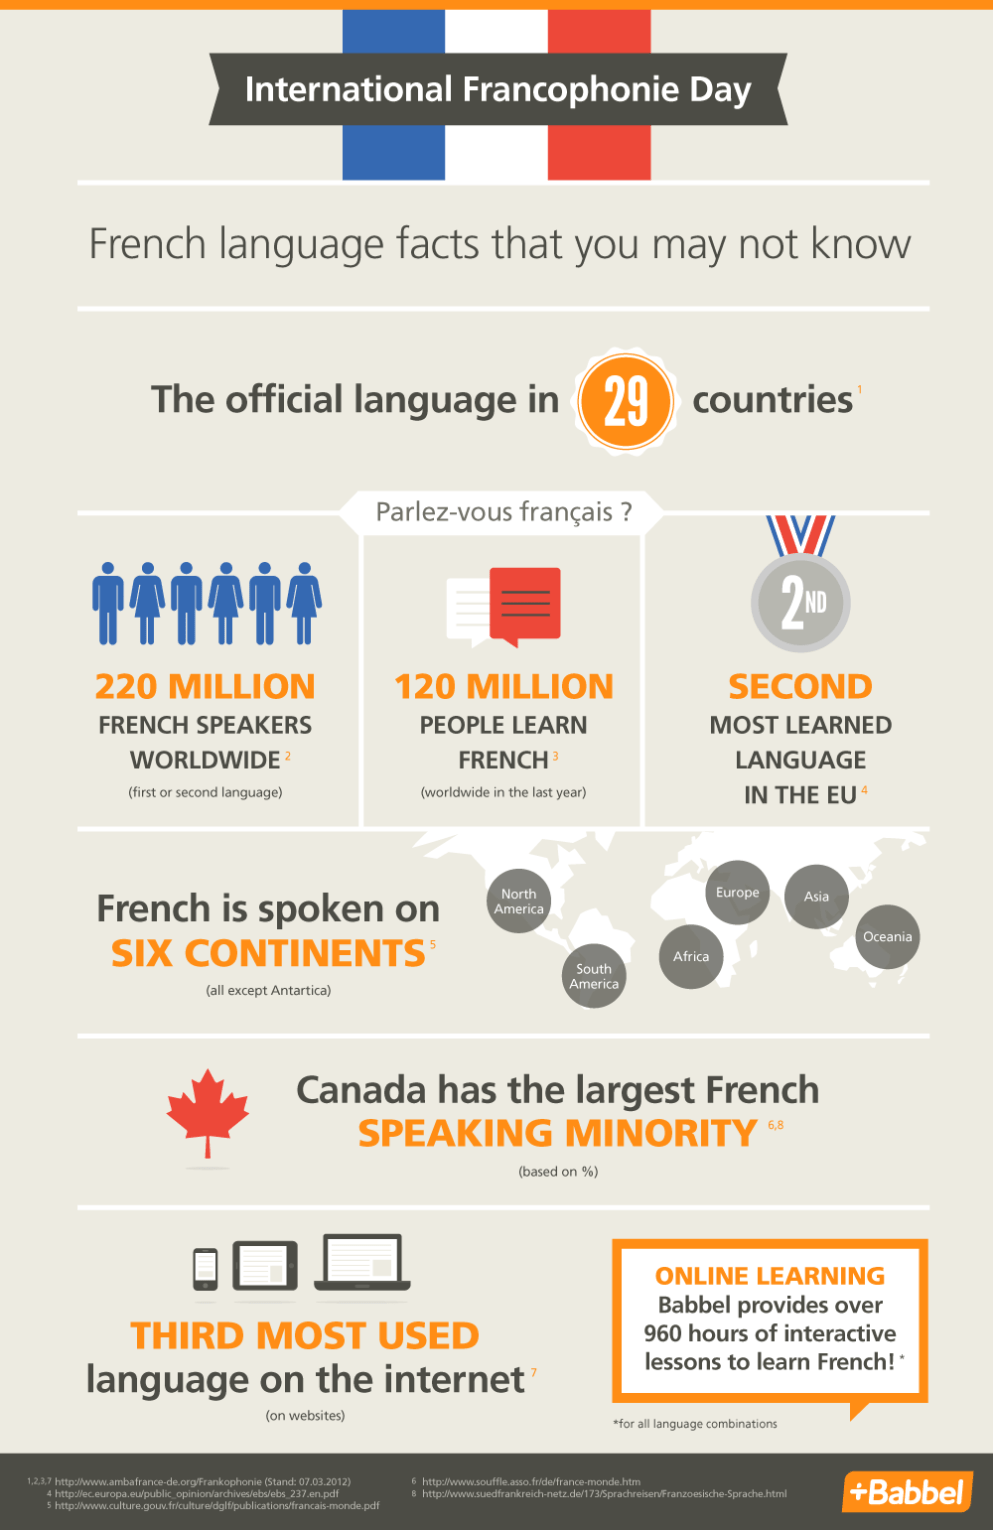 Vive la France! or further reasons why you should learn French